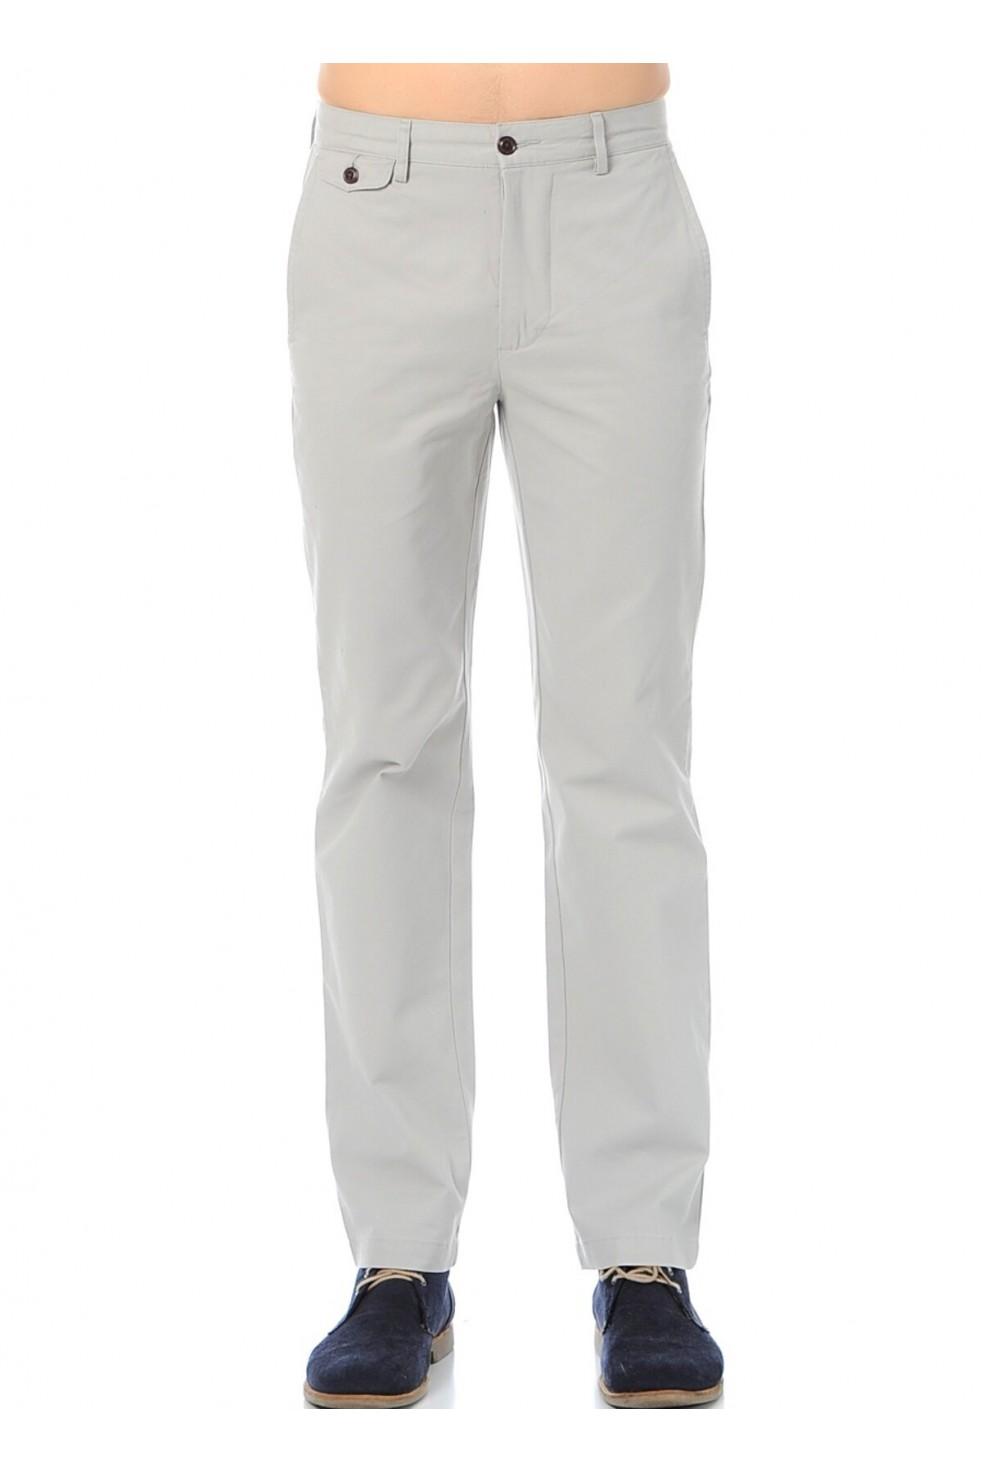 Dockers-Erkek-Pantolon-D1-Slim-Fit-47576-0006